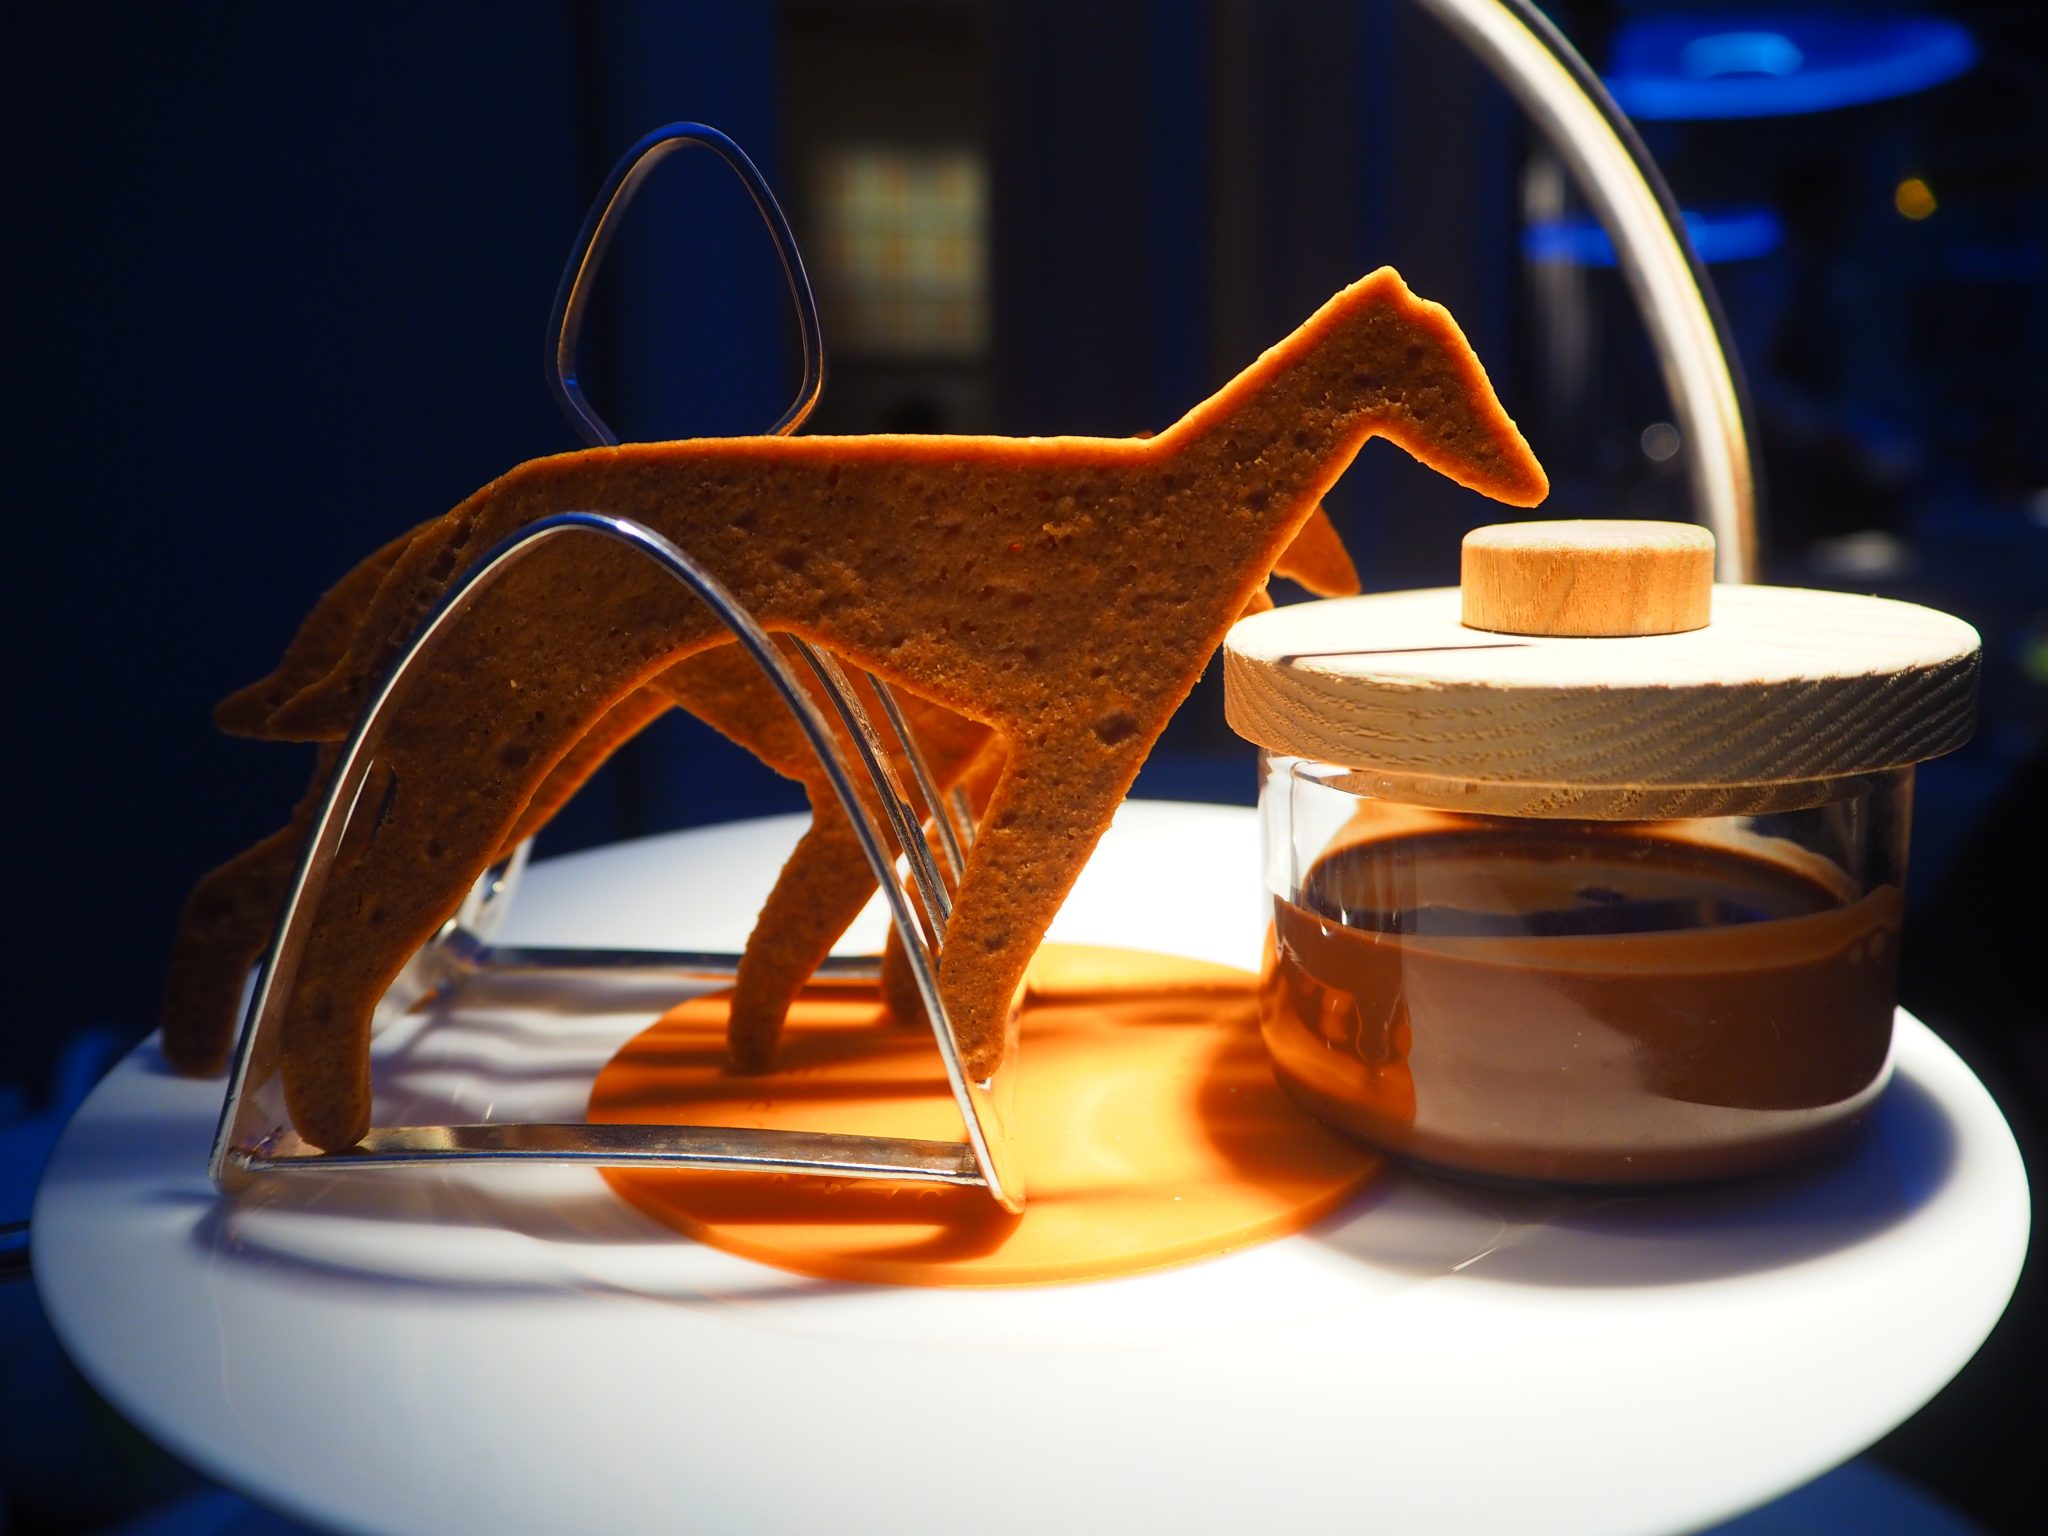 The chocolate fondue served with animal-shaped shortbreads